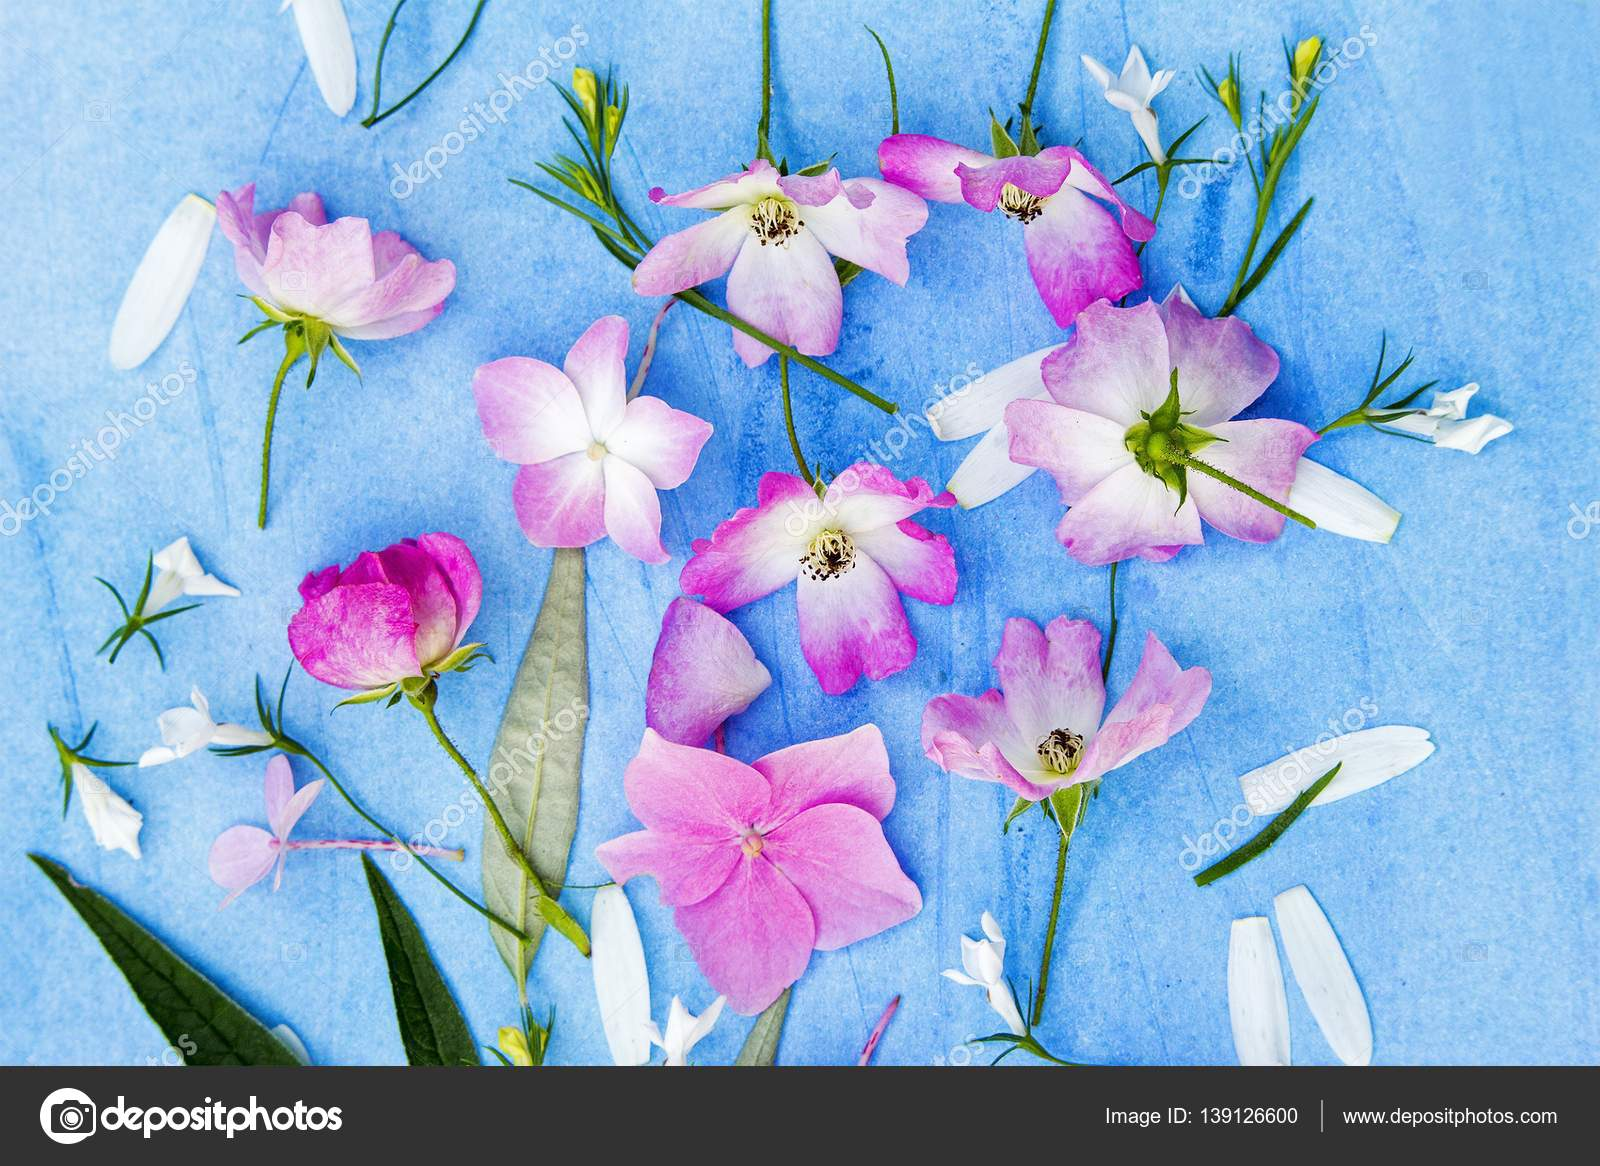 Beautiful Floral Background With Pink Roses And Hortensia Flowers On